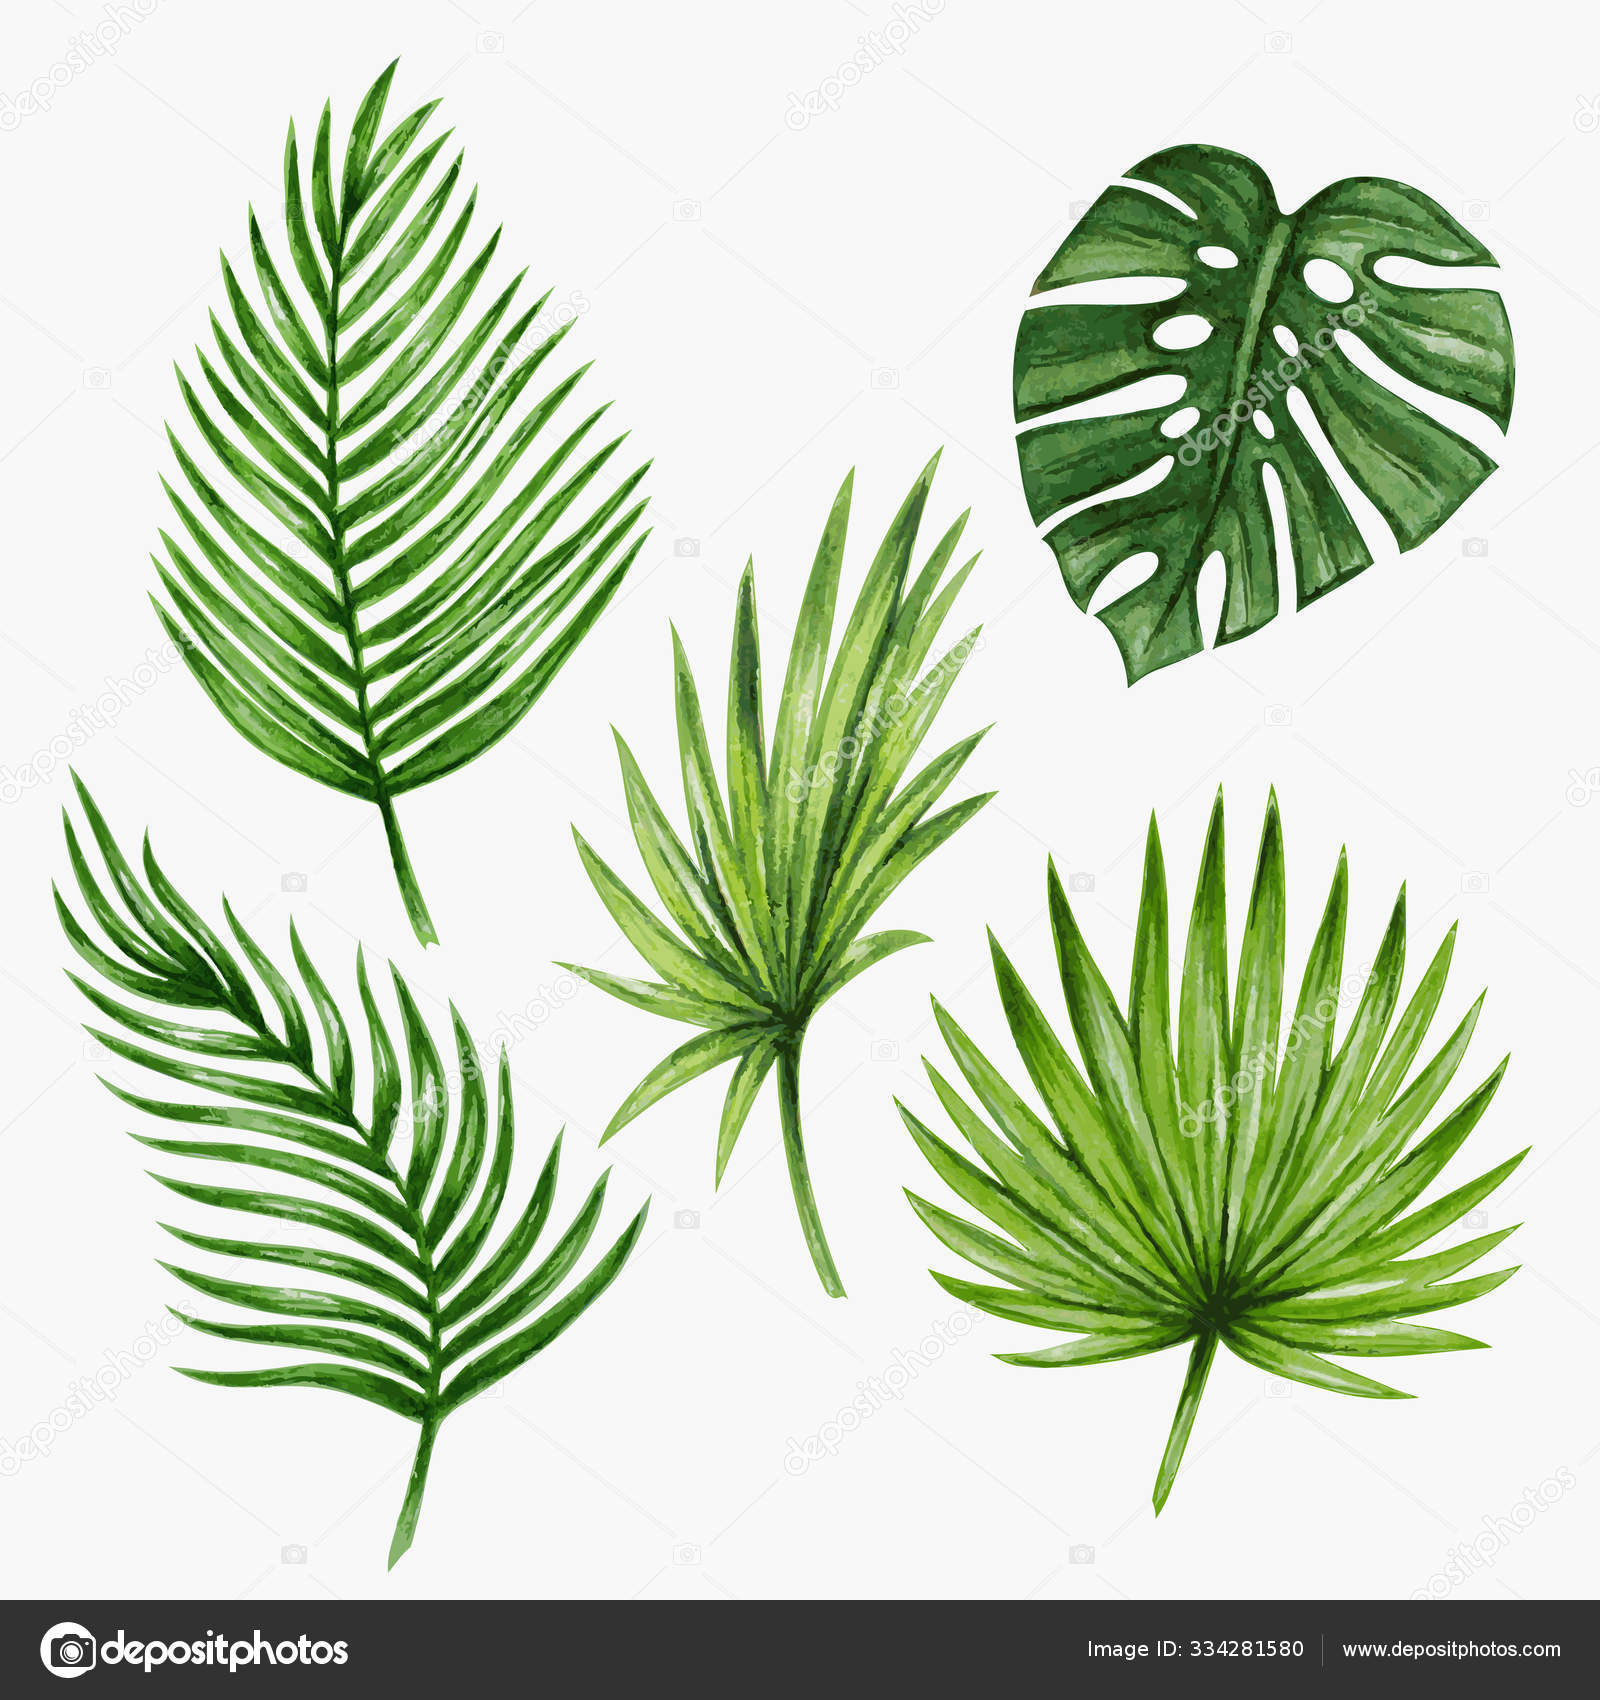 Watercolor Tropical Palm Leaves Stock Photo C Karinacornelius 334281580 Check out our tropical jpg selection for the very best in unique or custom, handmade pieces from our shops. https depositphotos com 334281580 stock photo watercolor tropical palm leaves html